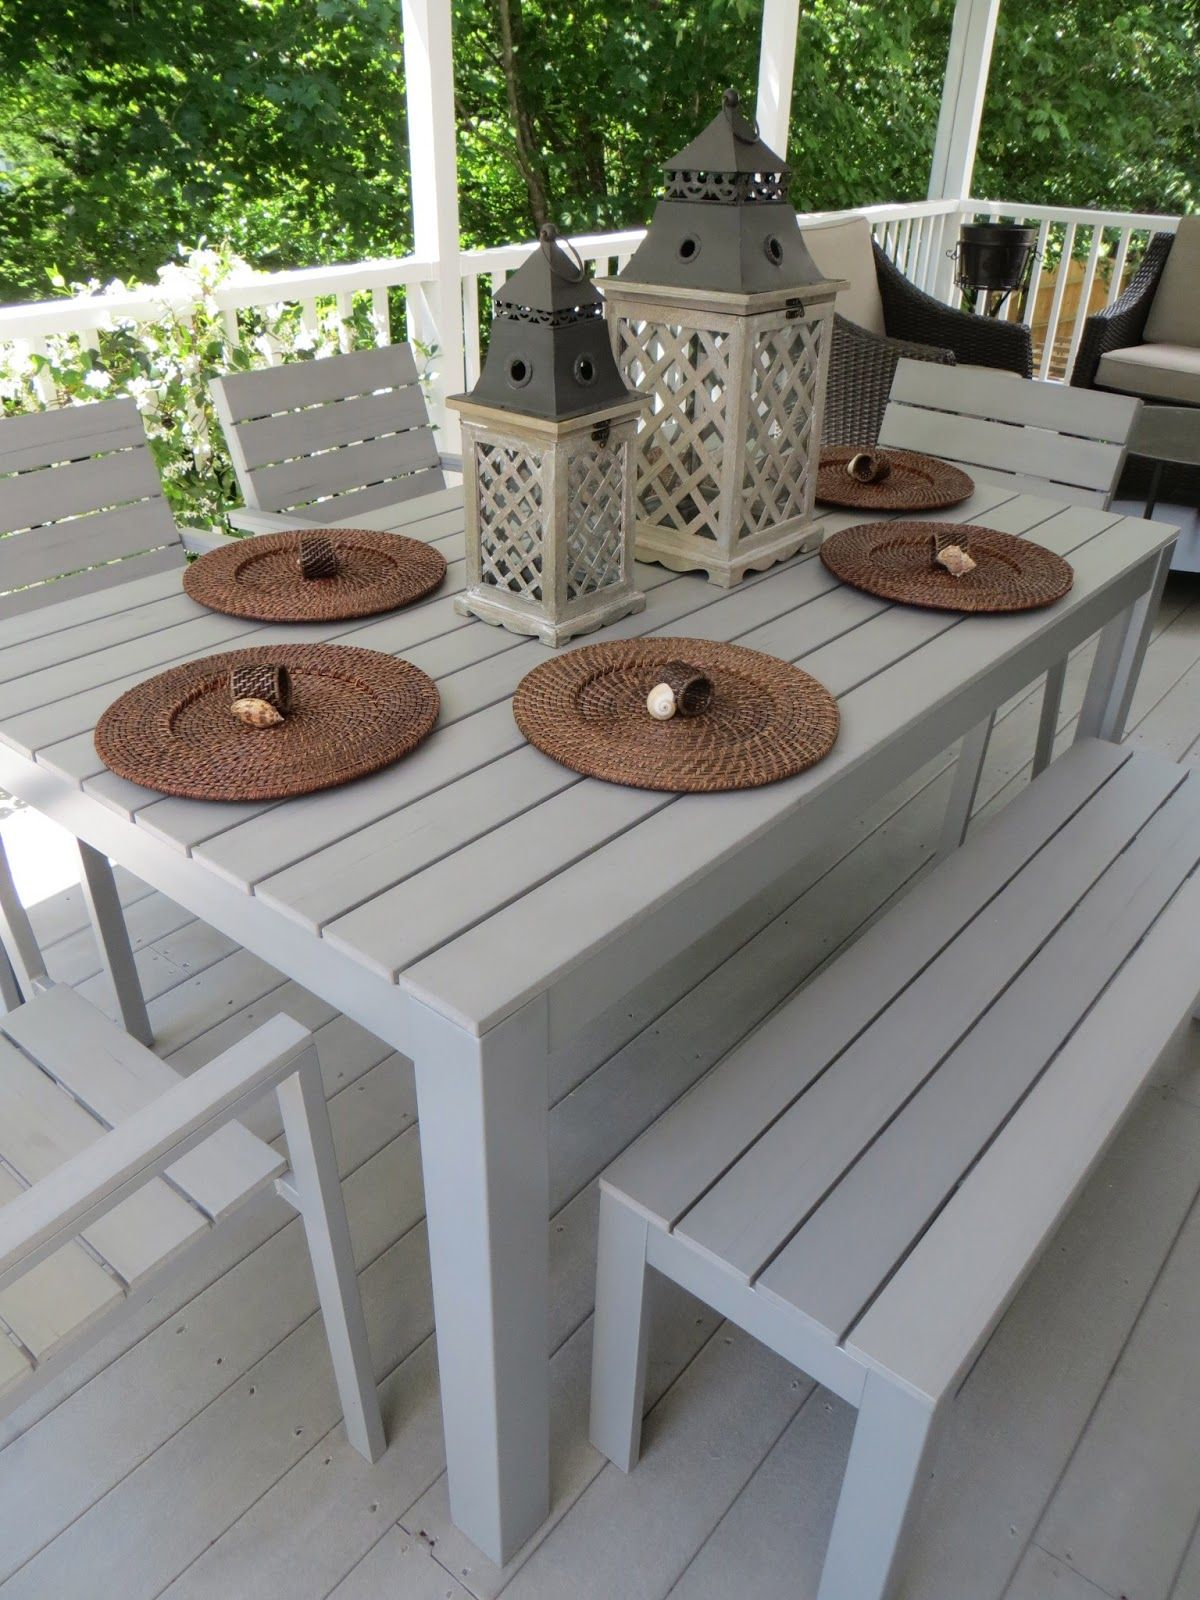 Patio Furniture Table And Chairs Falster Ikea I Love The Looks Of This Outdoor Dining Set Table